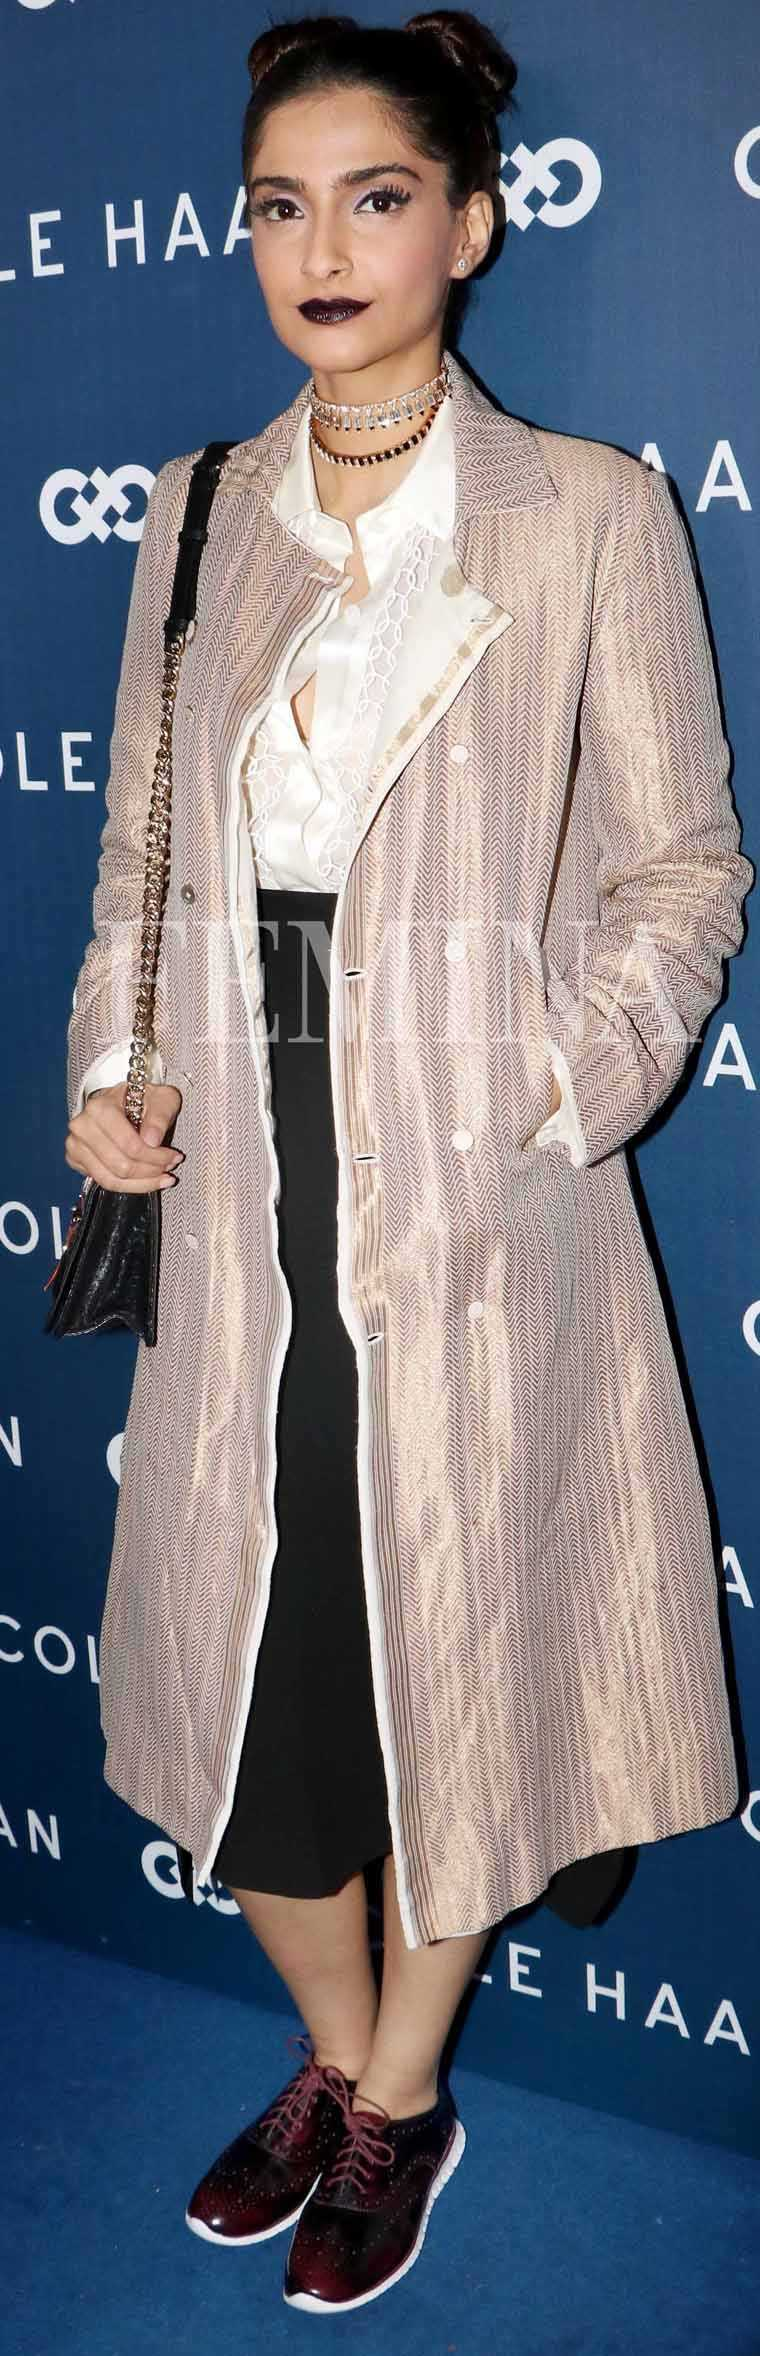 SONAM KAPOOR: The actor was recently spotted wearing a white Bibhu Mohapatra shirt under a gold Pero coat. While the look was quite luxe, Cole Haan sneakers and a goth makeup look kept things casual.